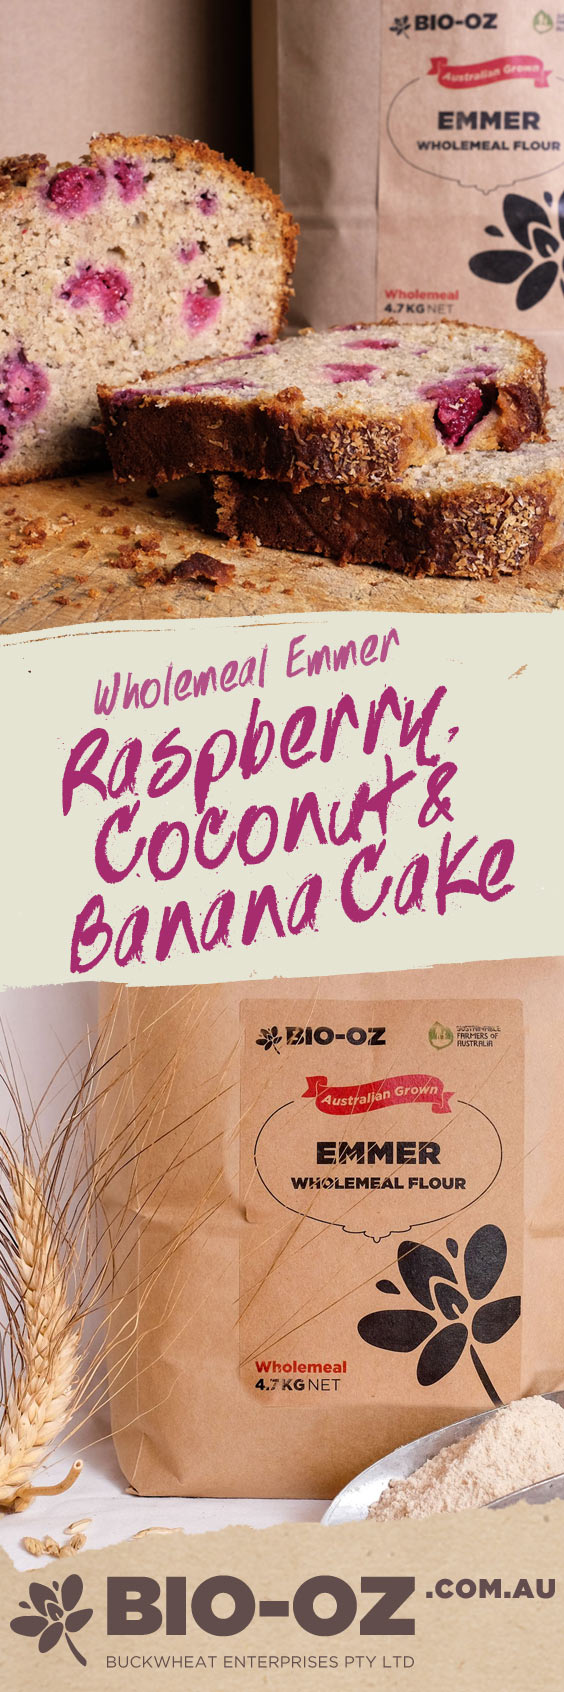 Bio-Oz Raspberry, Coconut and Banana Cake